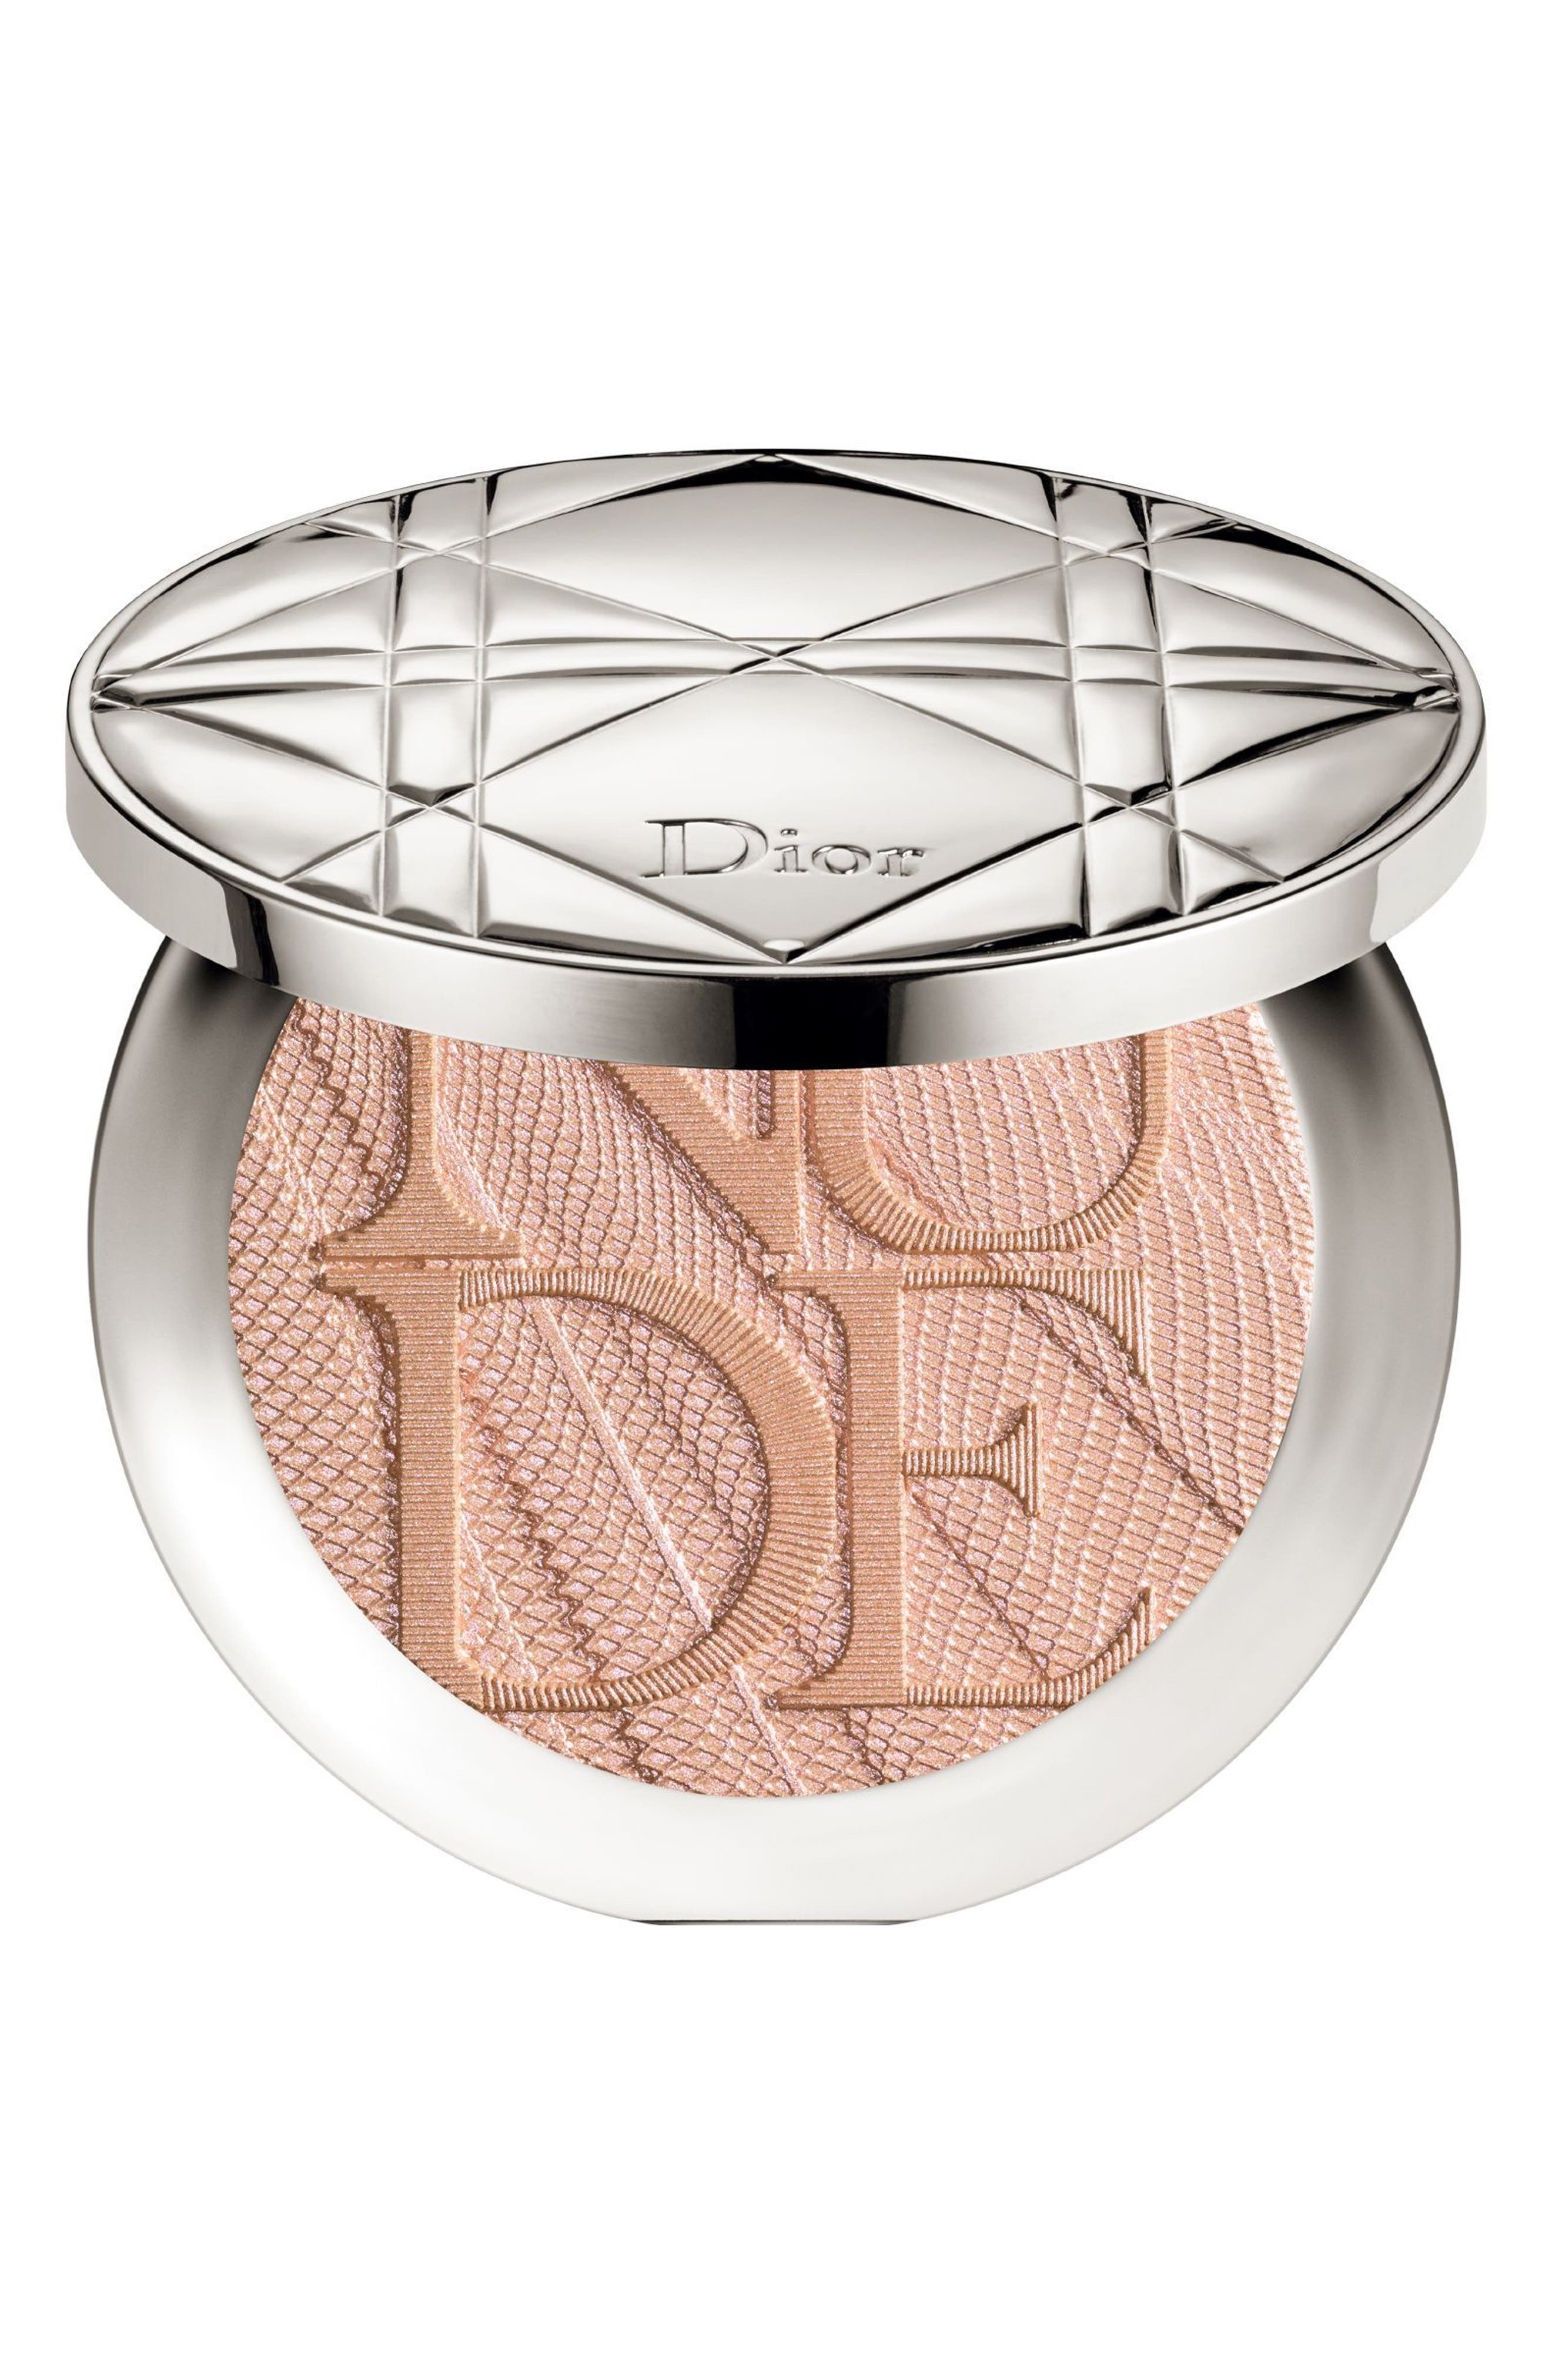 Diorskin Nude Air Luminizer Glow Addict Holographic Sculpting Powder,                         Main,                         color, 002 HOLO GOLD